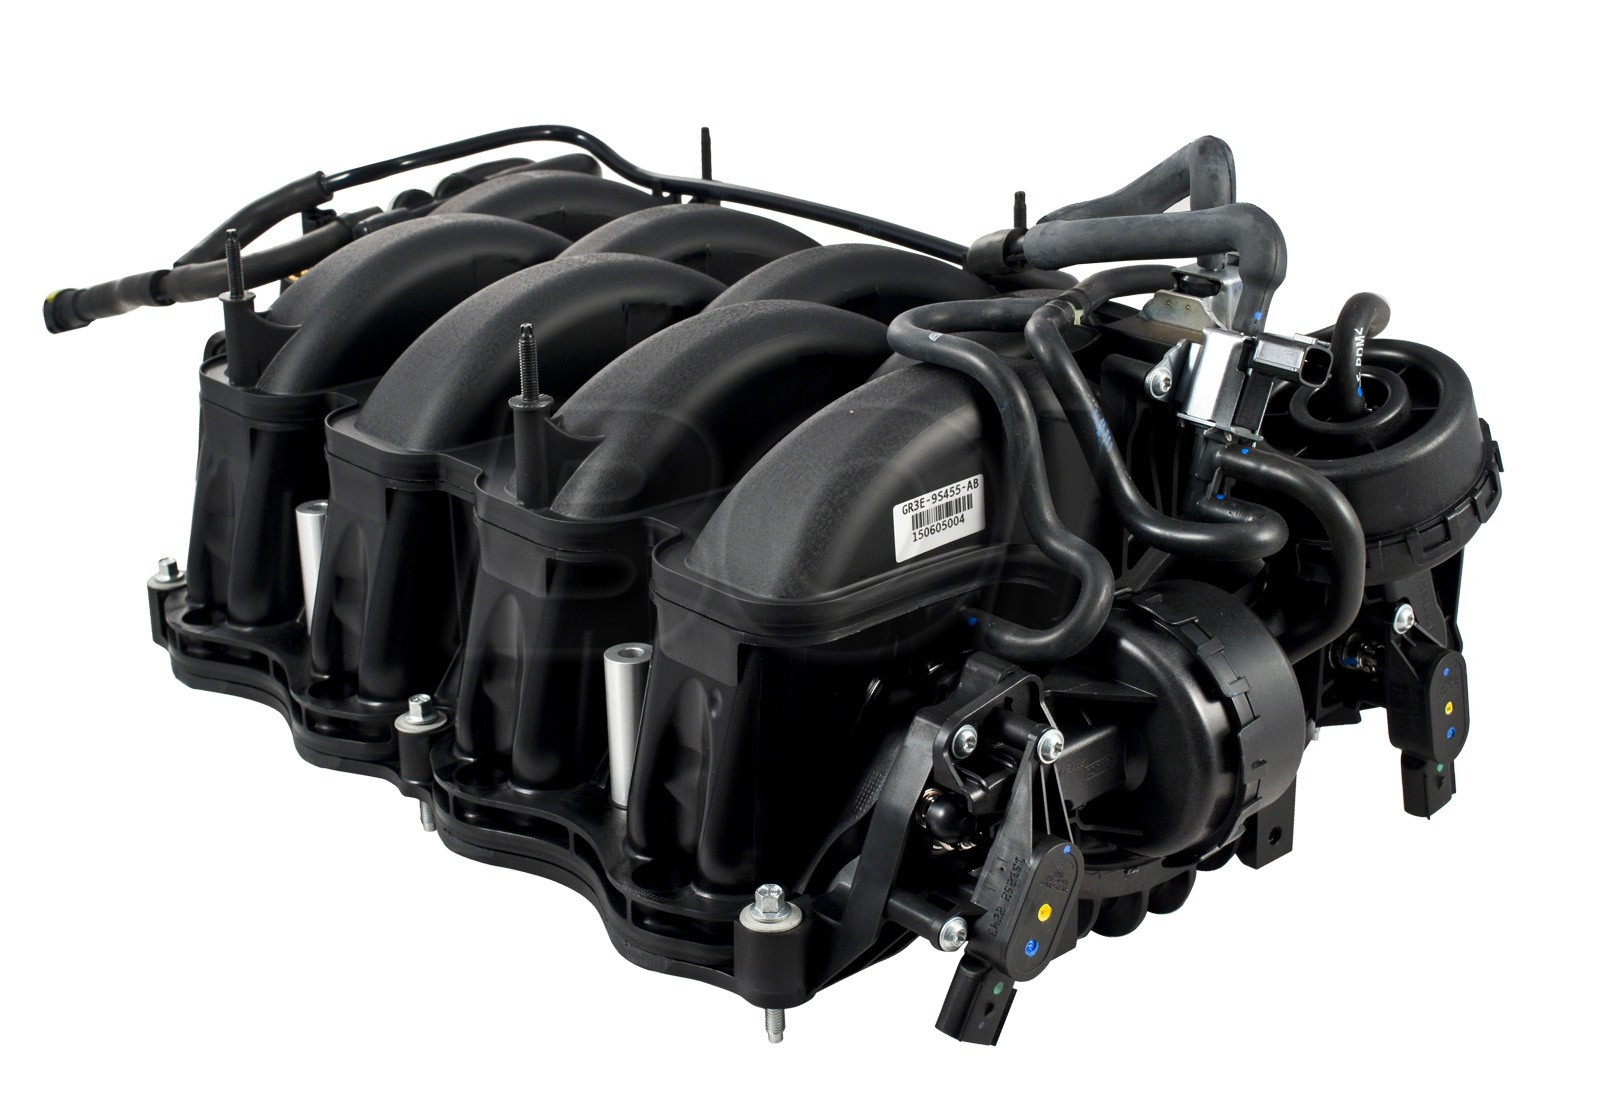 En also Bp besides Edu together with Maxresdefault in addition Large Img Cn. on 95 mustang gt engine